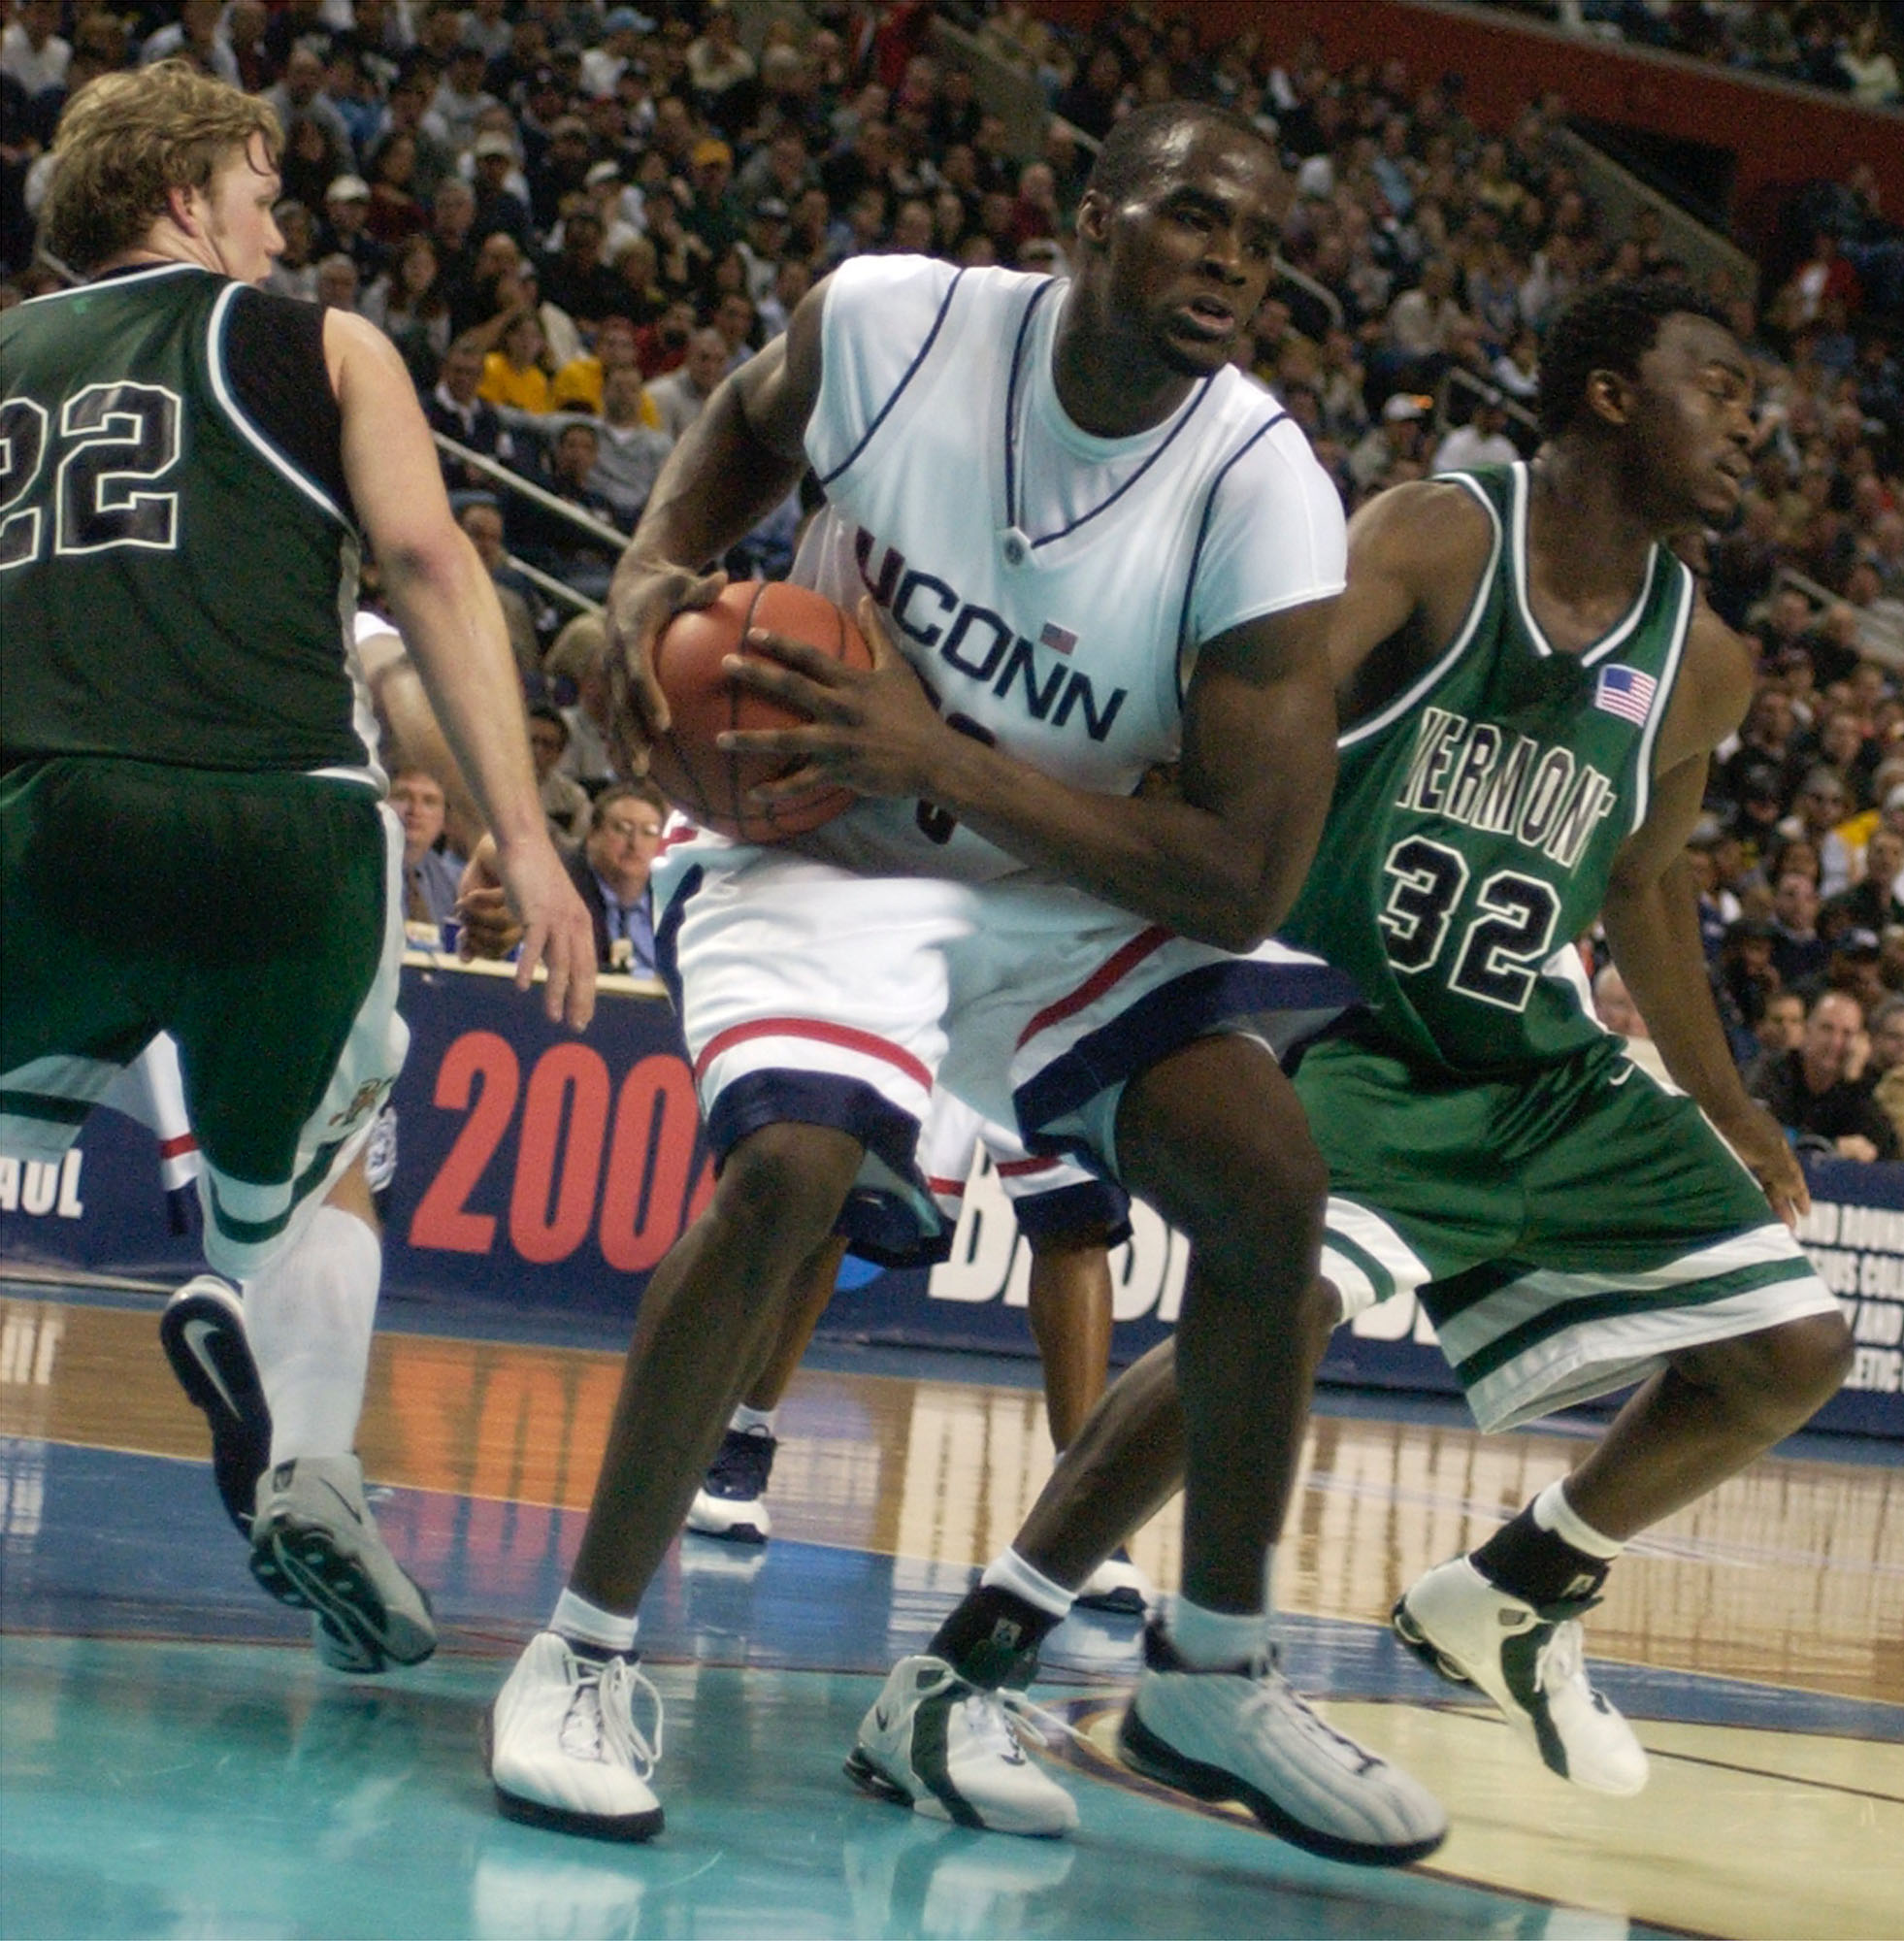 UConn 's  Emeka Okafore protects a rebound as  University of Vermont  players fall back. (John Hickey/Buffalo News)